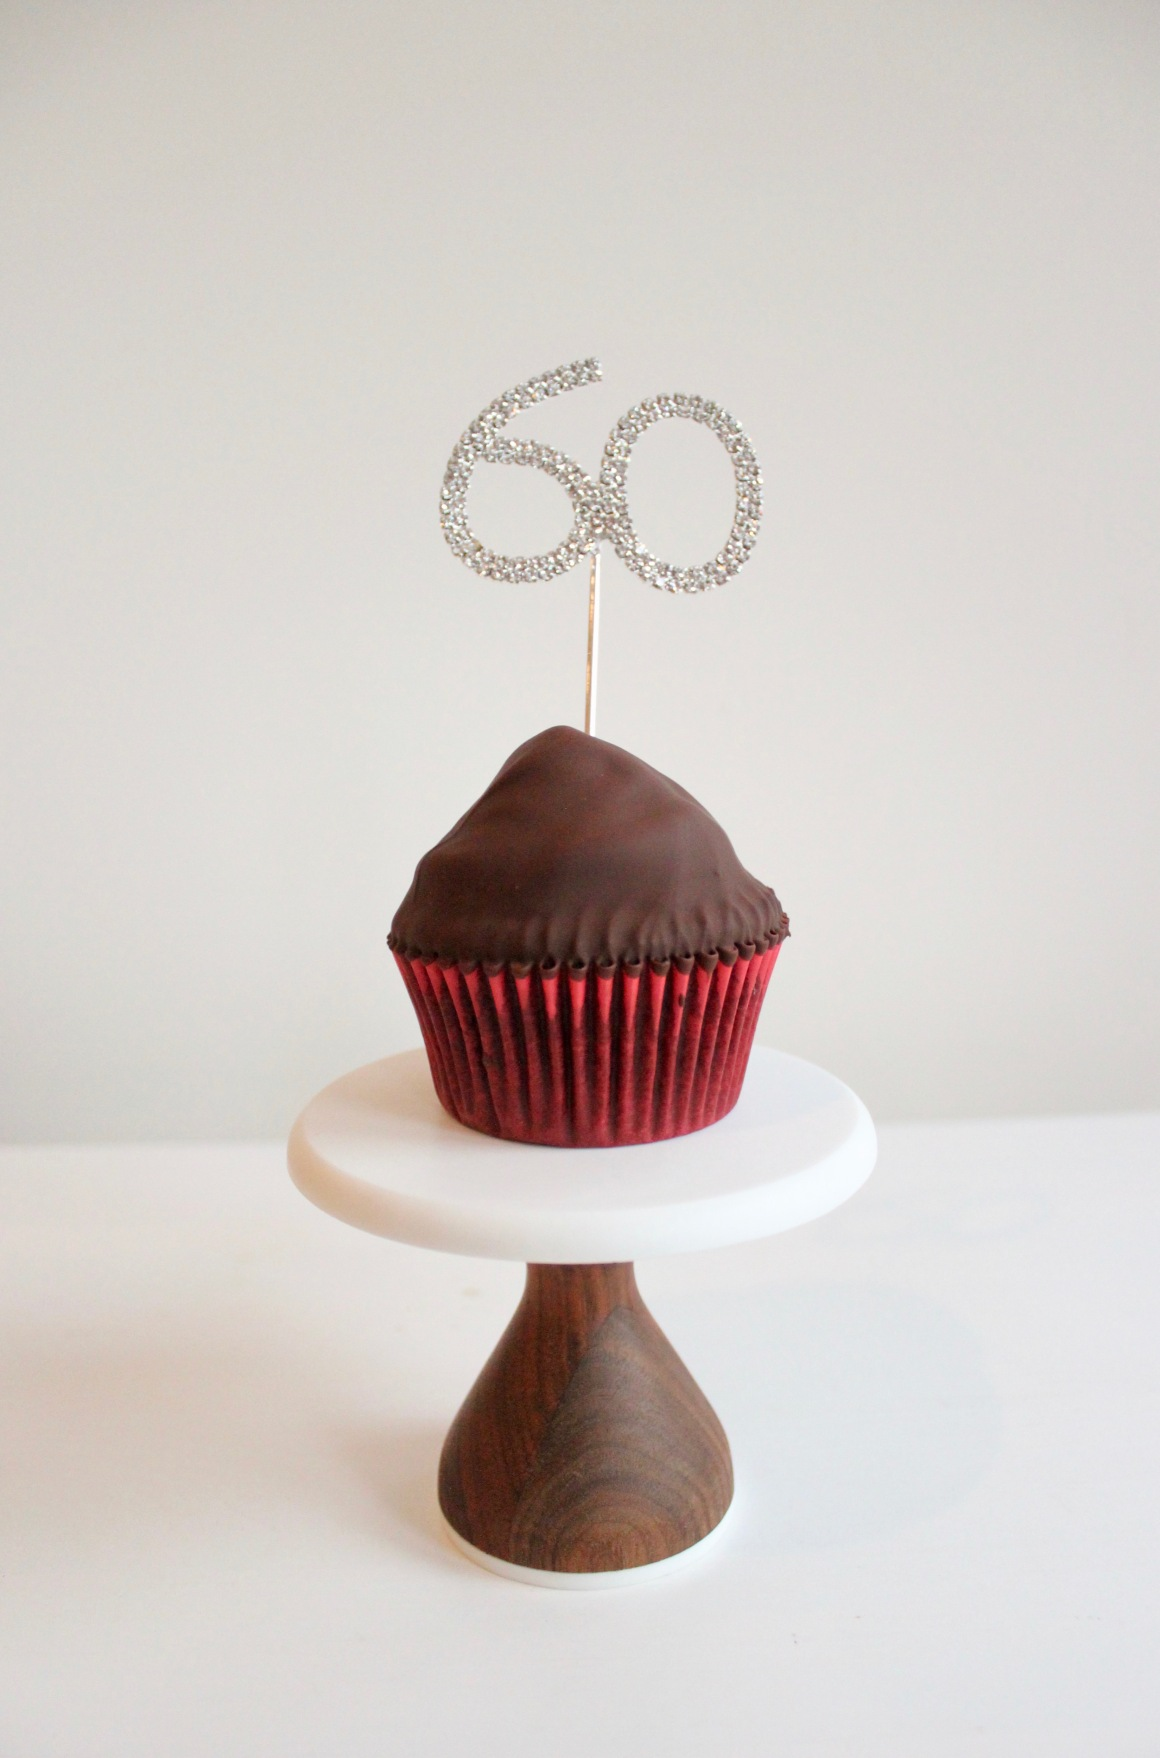 Sixtieth cake topper on a cupcake